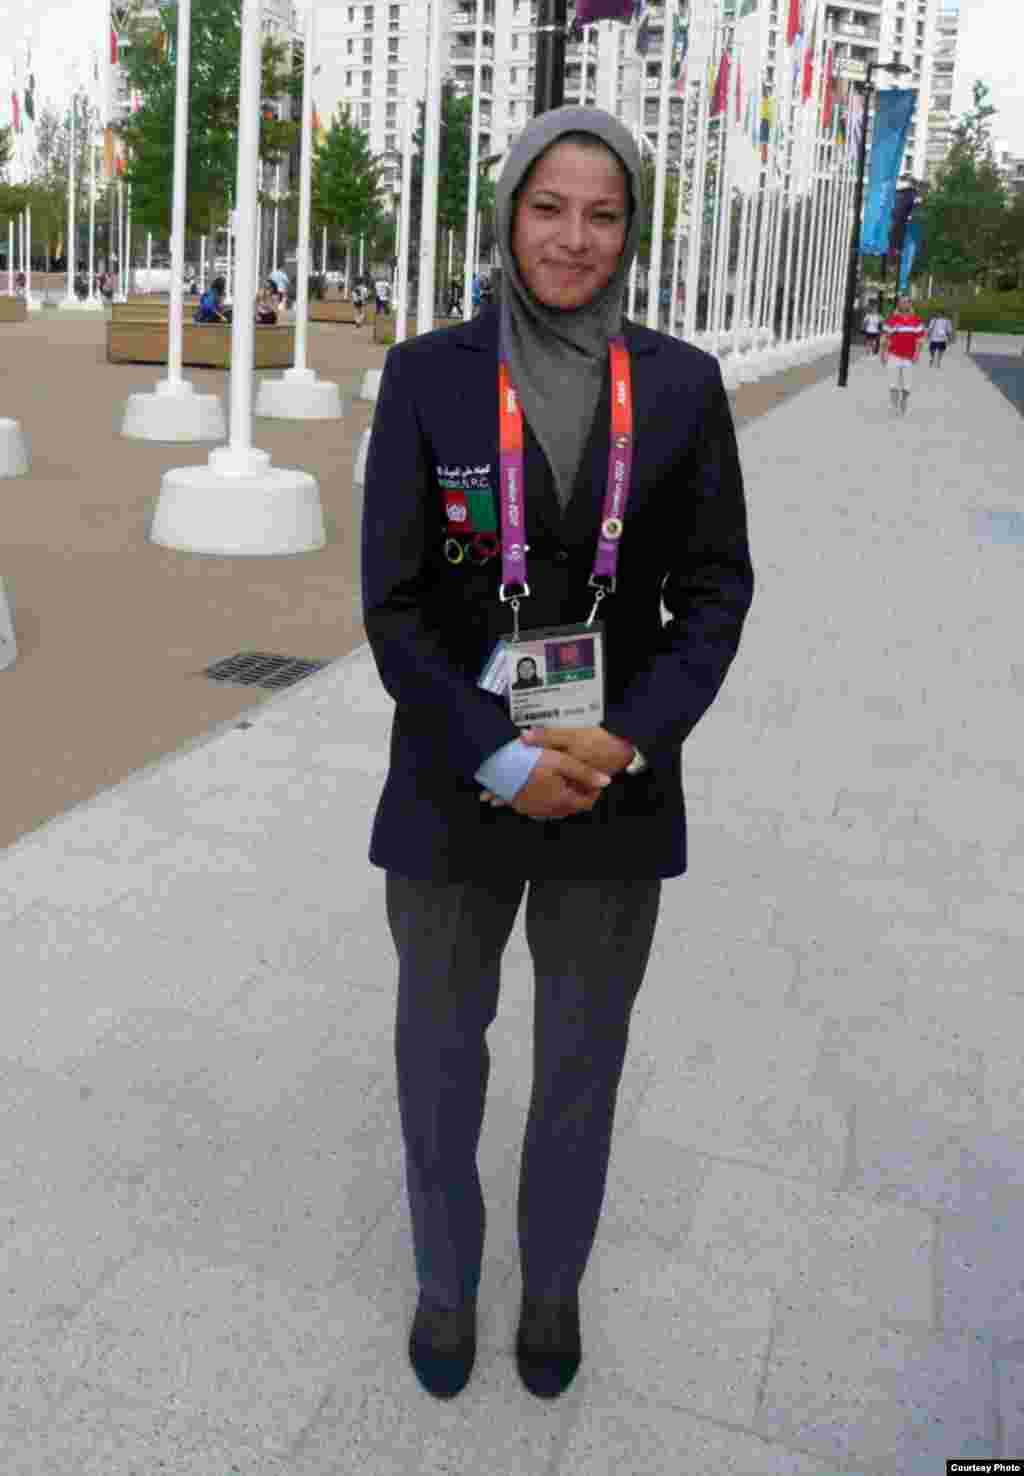 Afghan sprinter Tahmina Kohestani wears the team's simple suit before the Games -- but for the Opening Ceremony, she's expected to be the only team member in Afghan national dress.